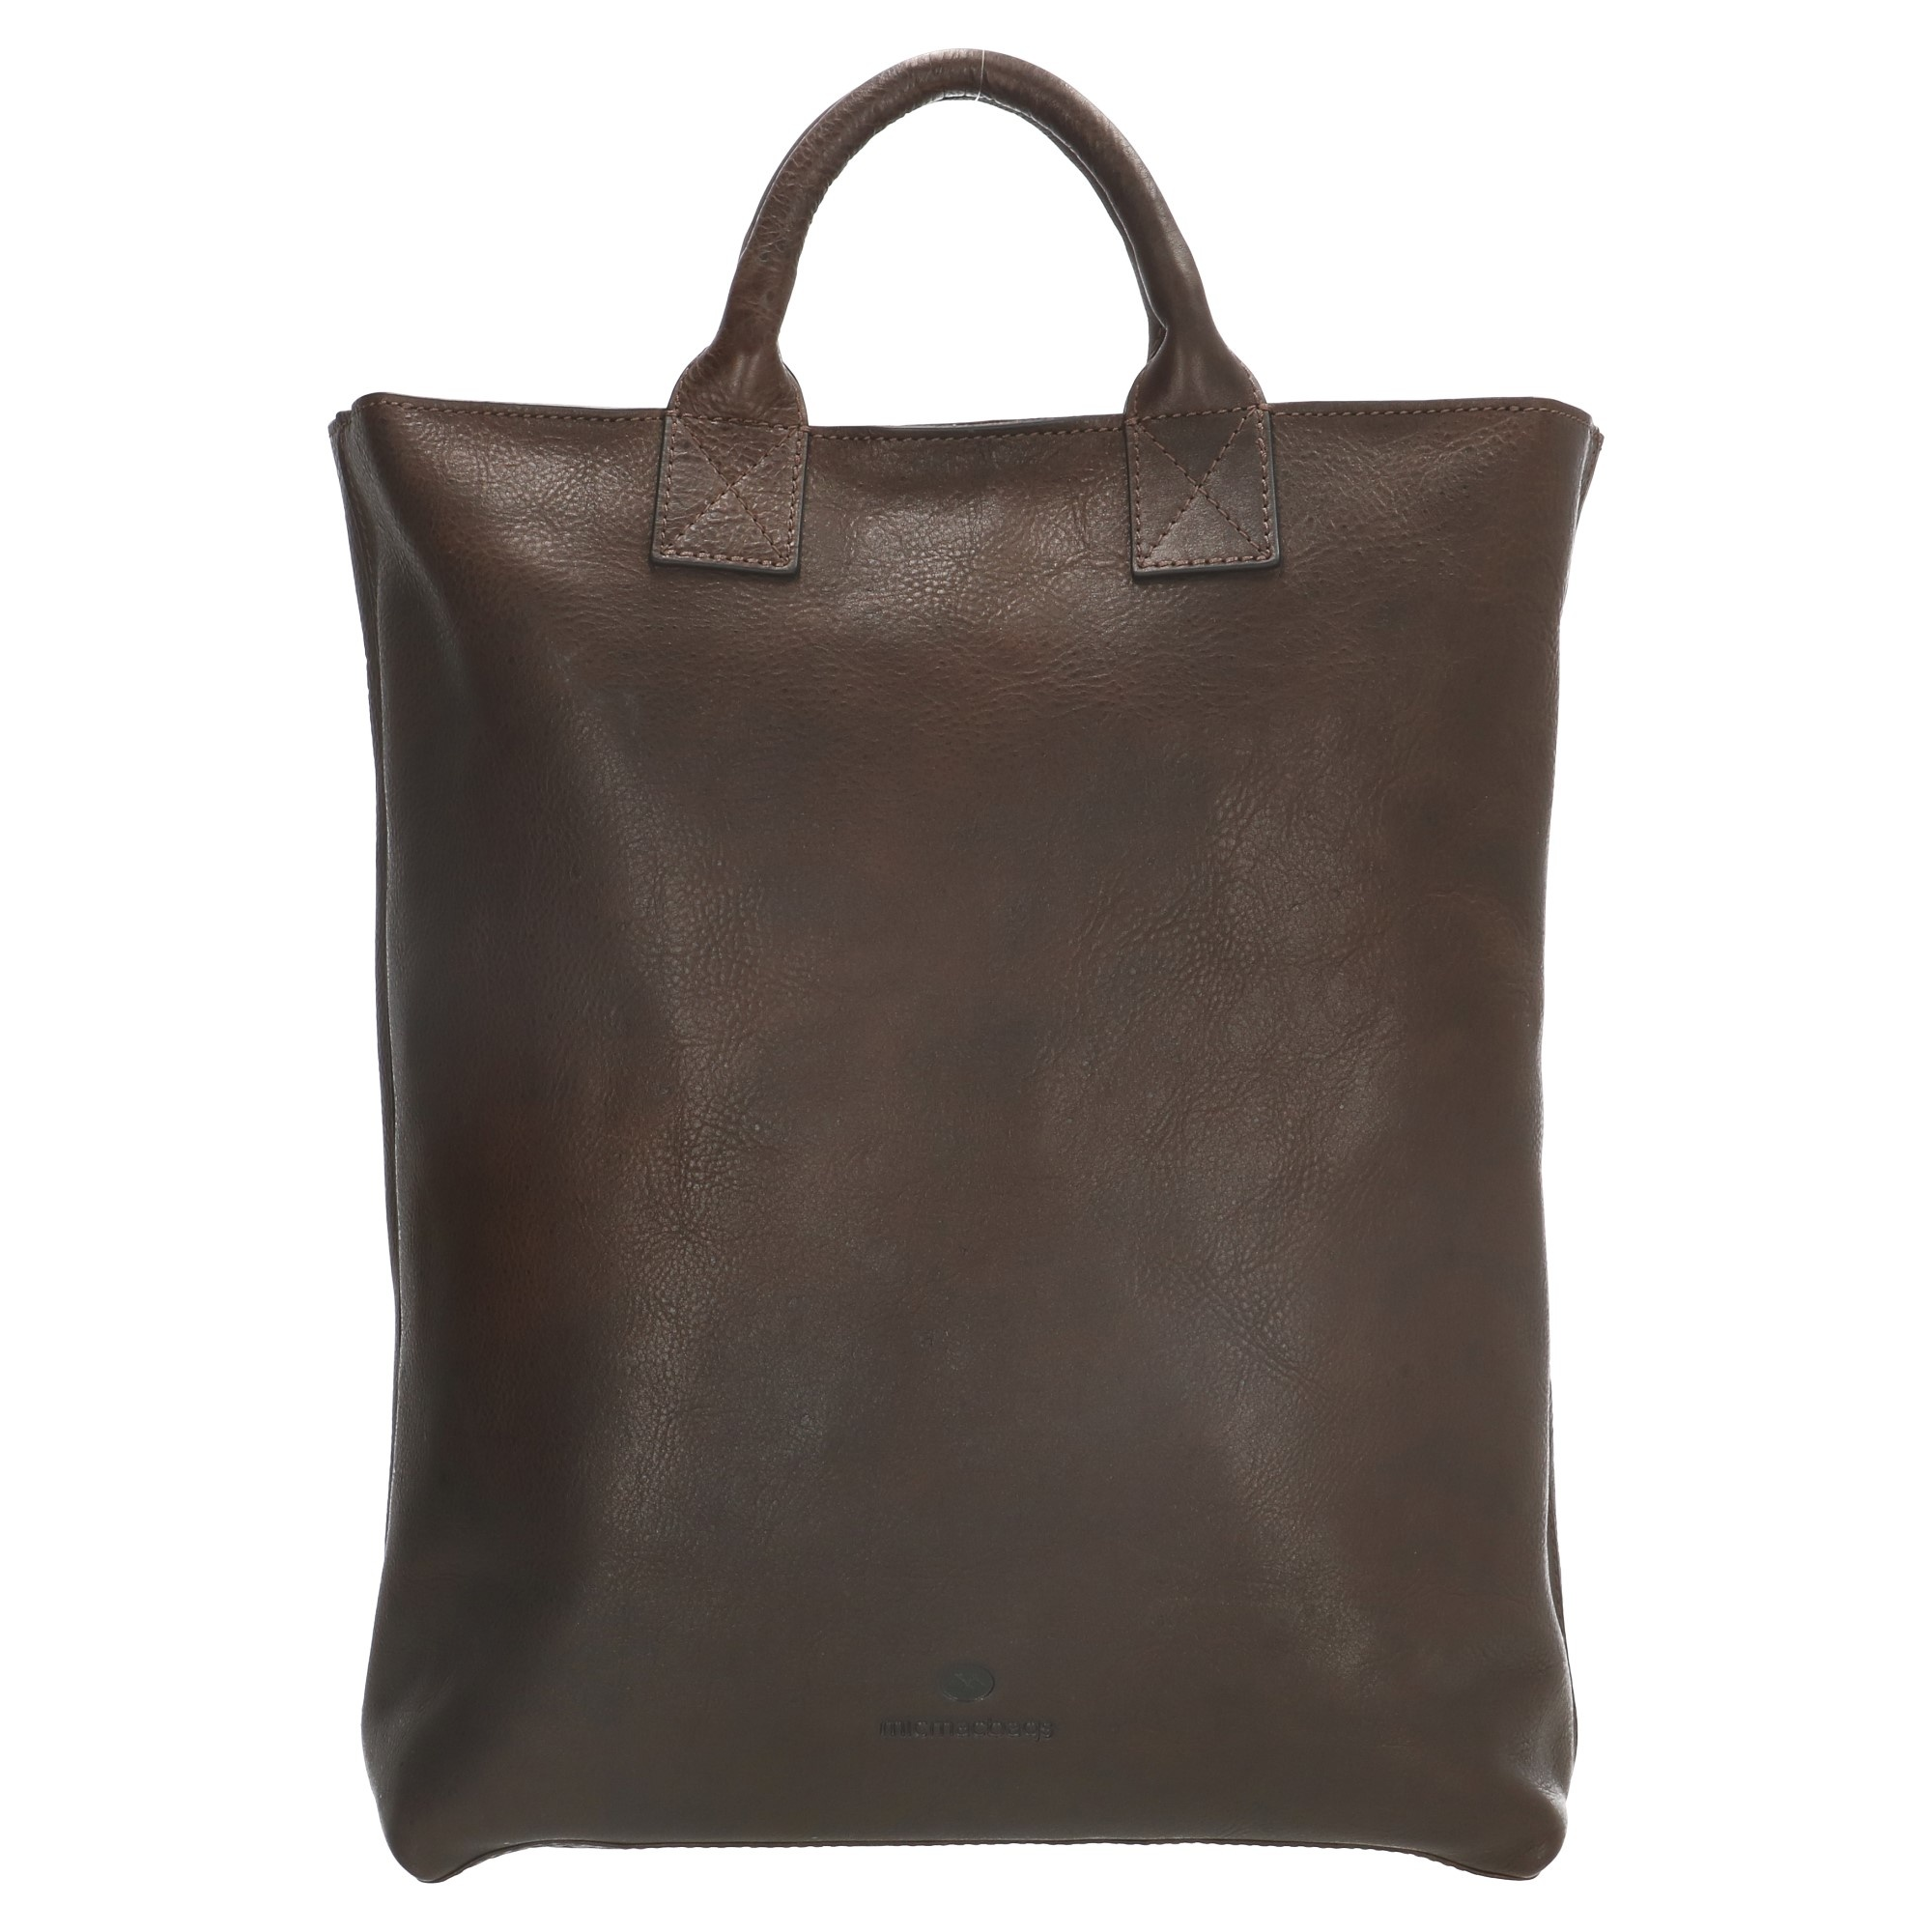 Micmacbags Discover Rugzak 15 Inch Donkerbruin